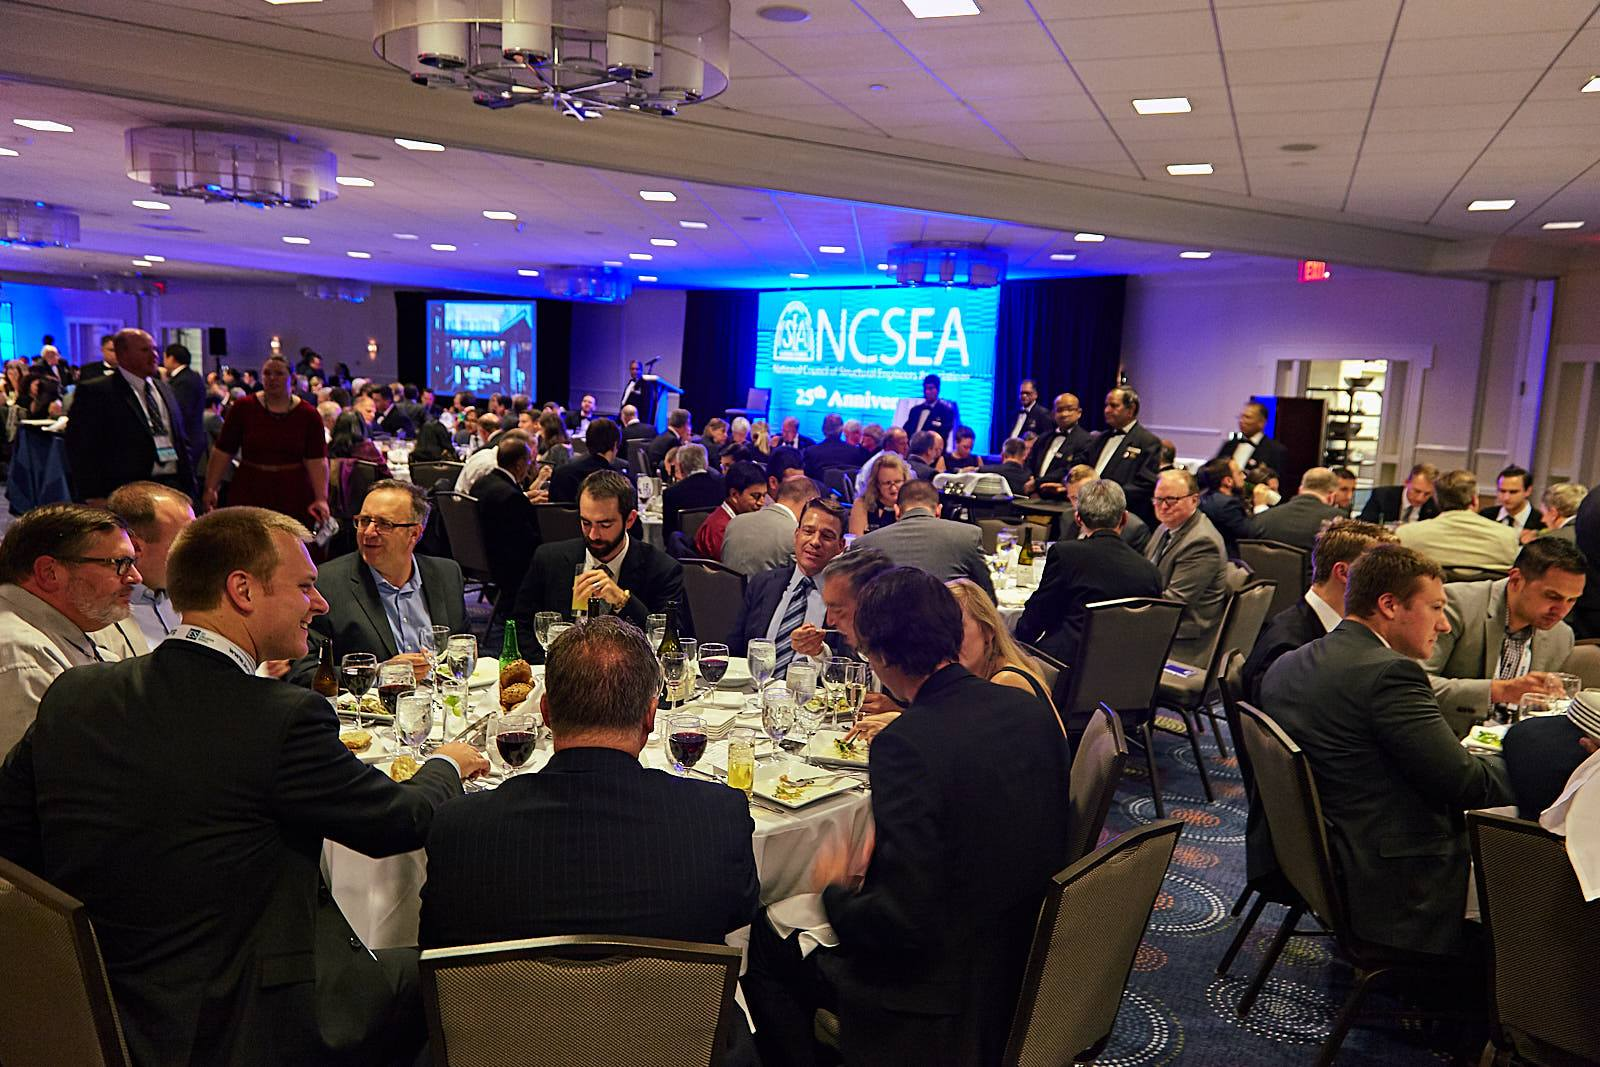 Attendees at the 2017 NCSEA Awards Banquet honoring winners of the Excellence in Structural Engineering Awards